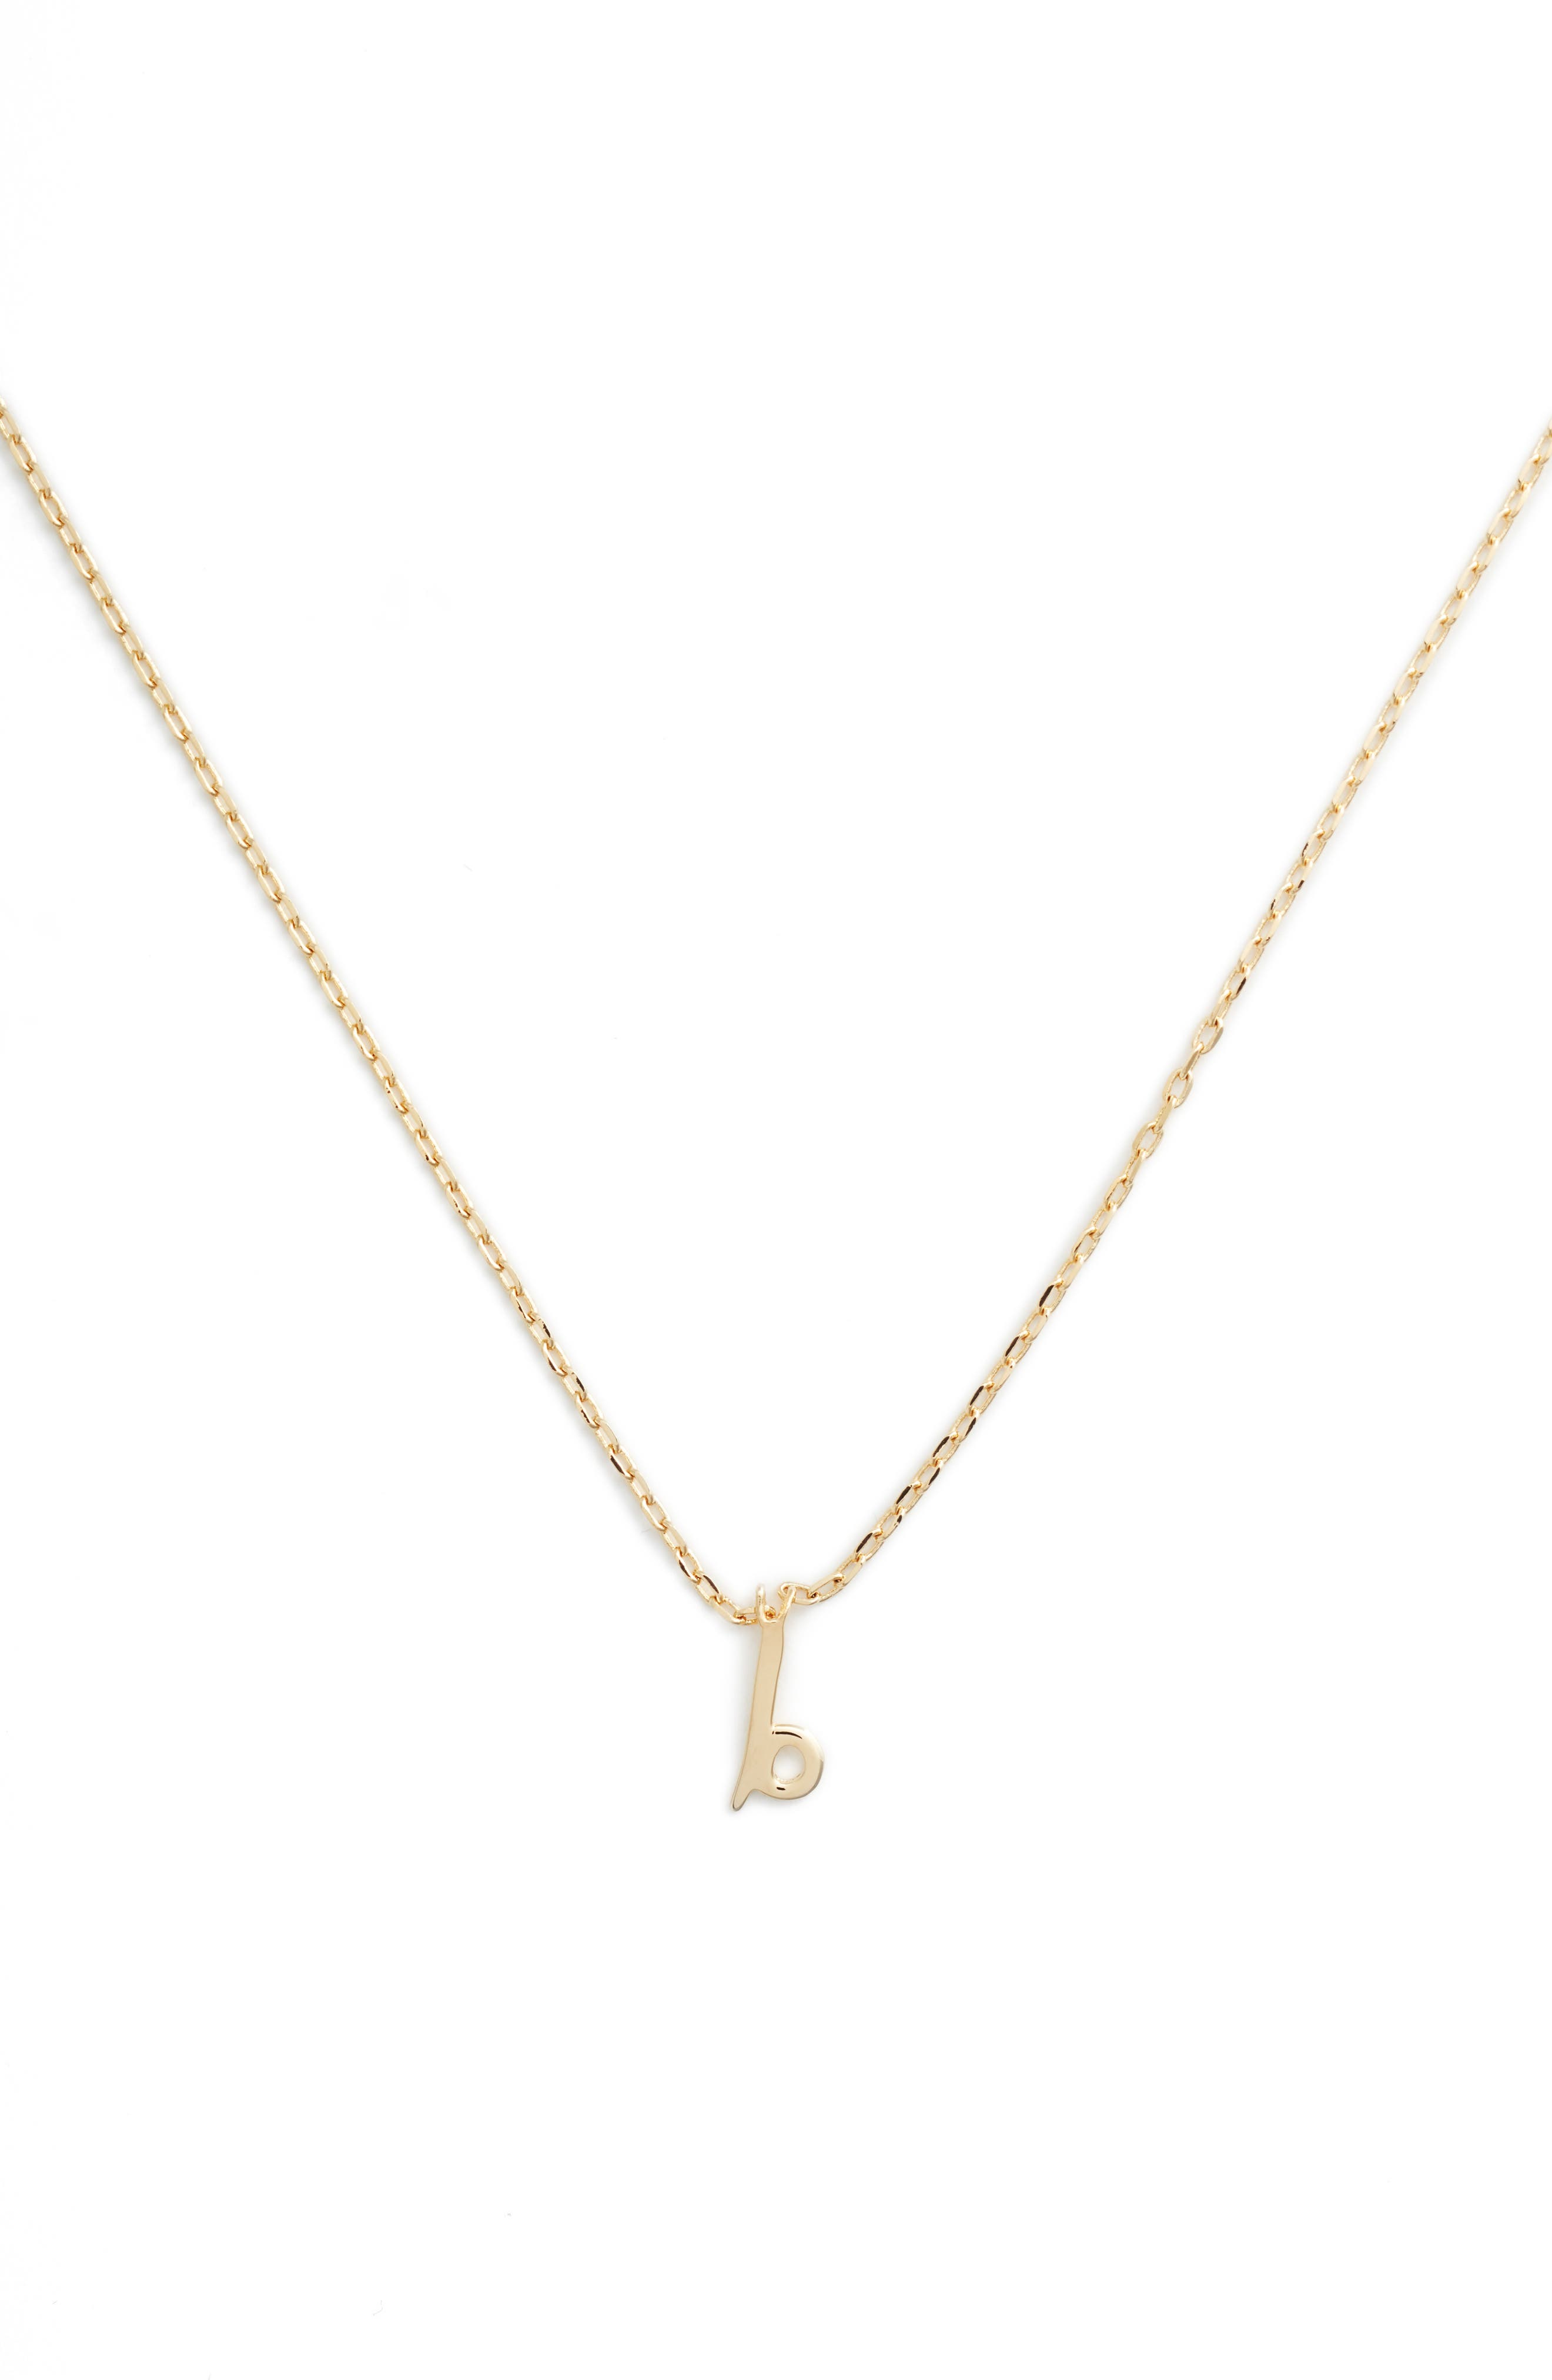 KATE SPADE NEW YORK kate spade one in a million initial pendant necklace, Main, color, B-GOLD